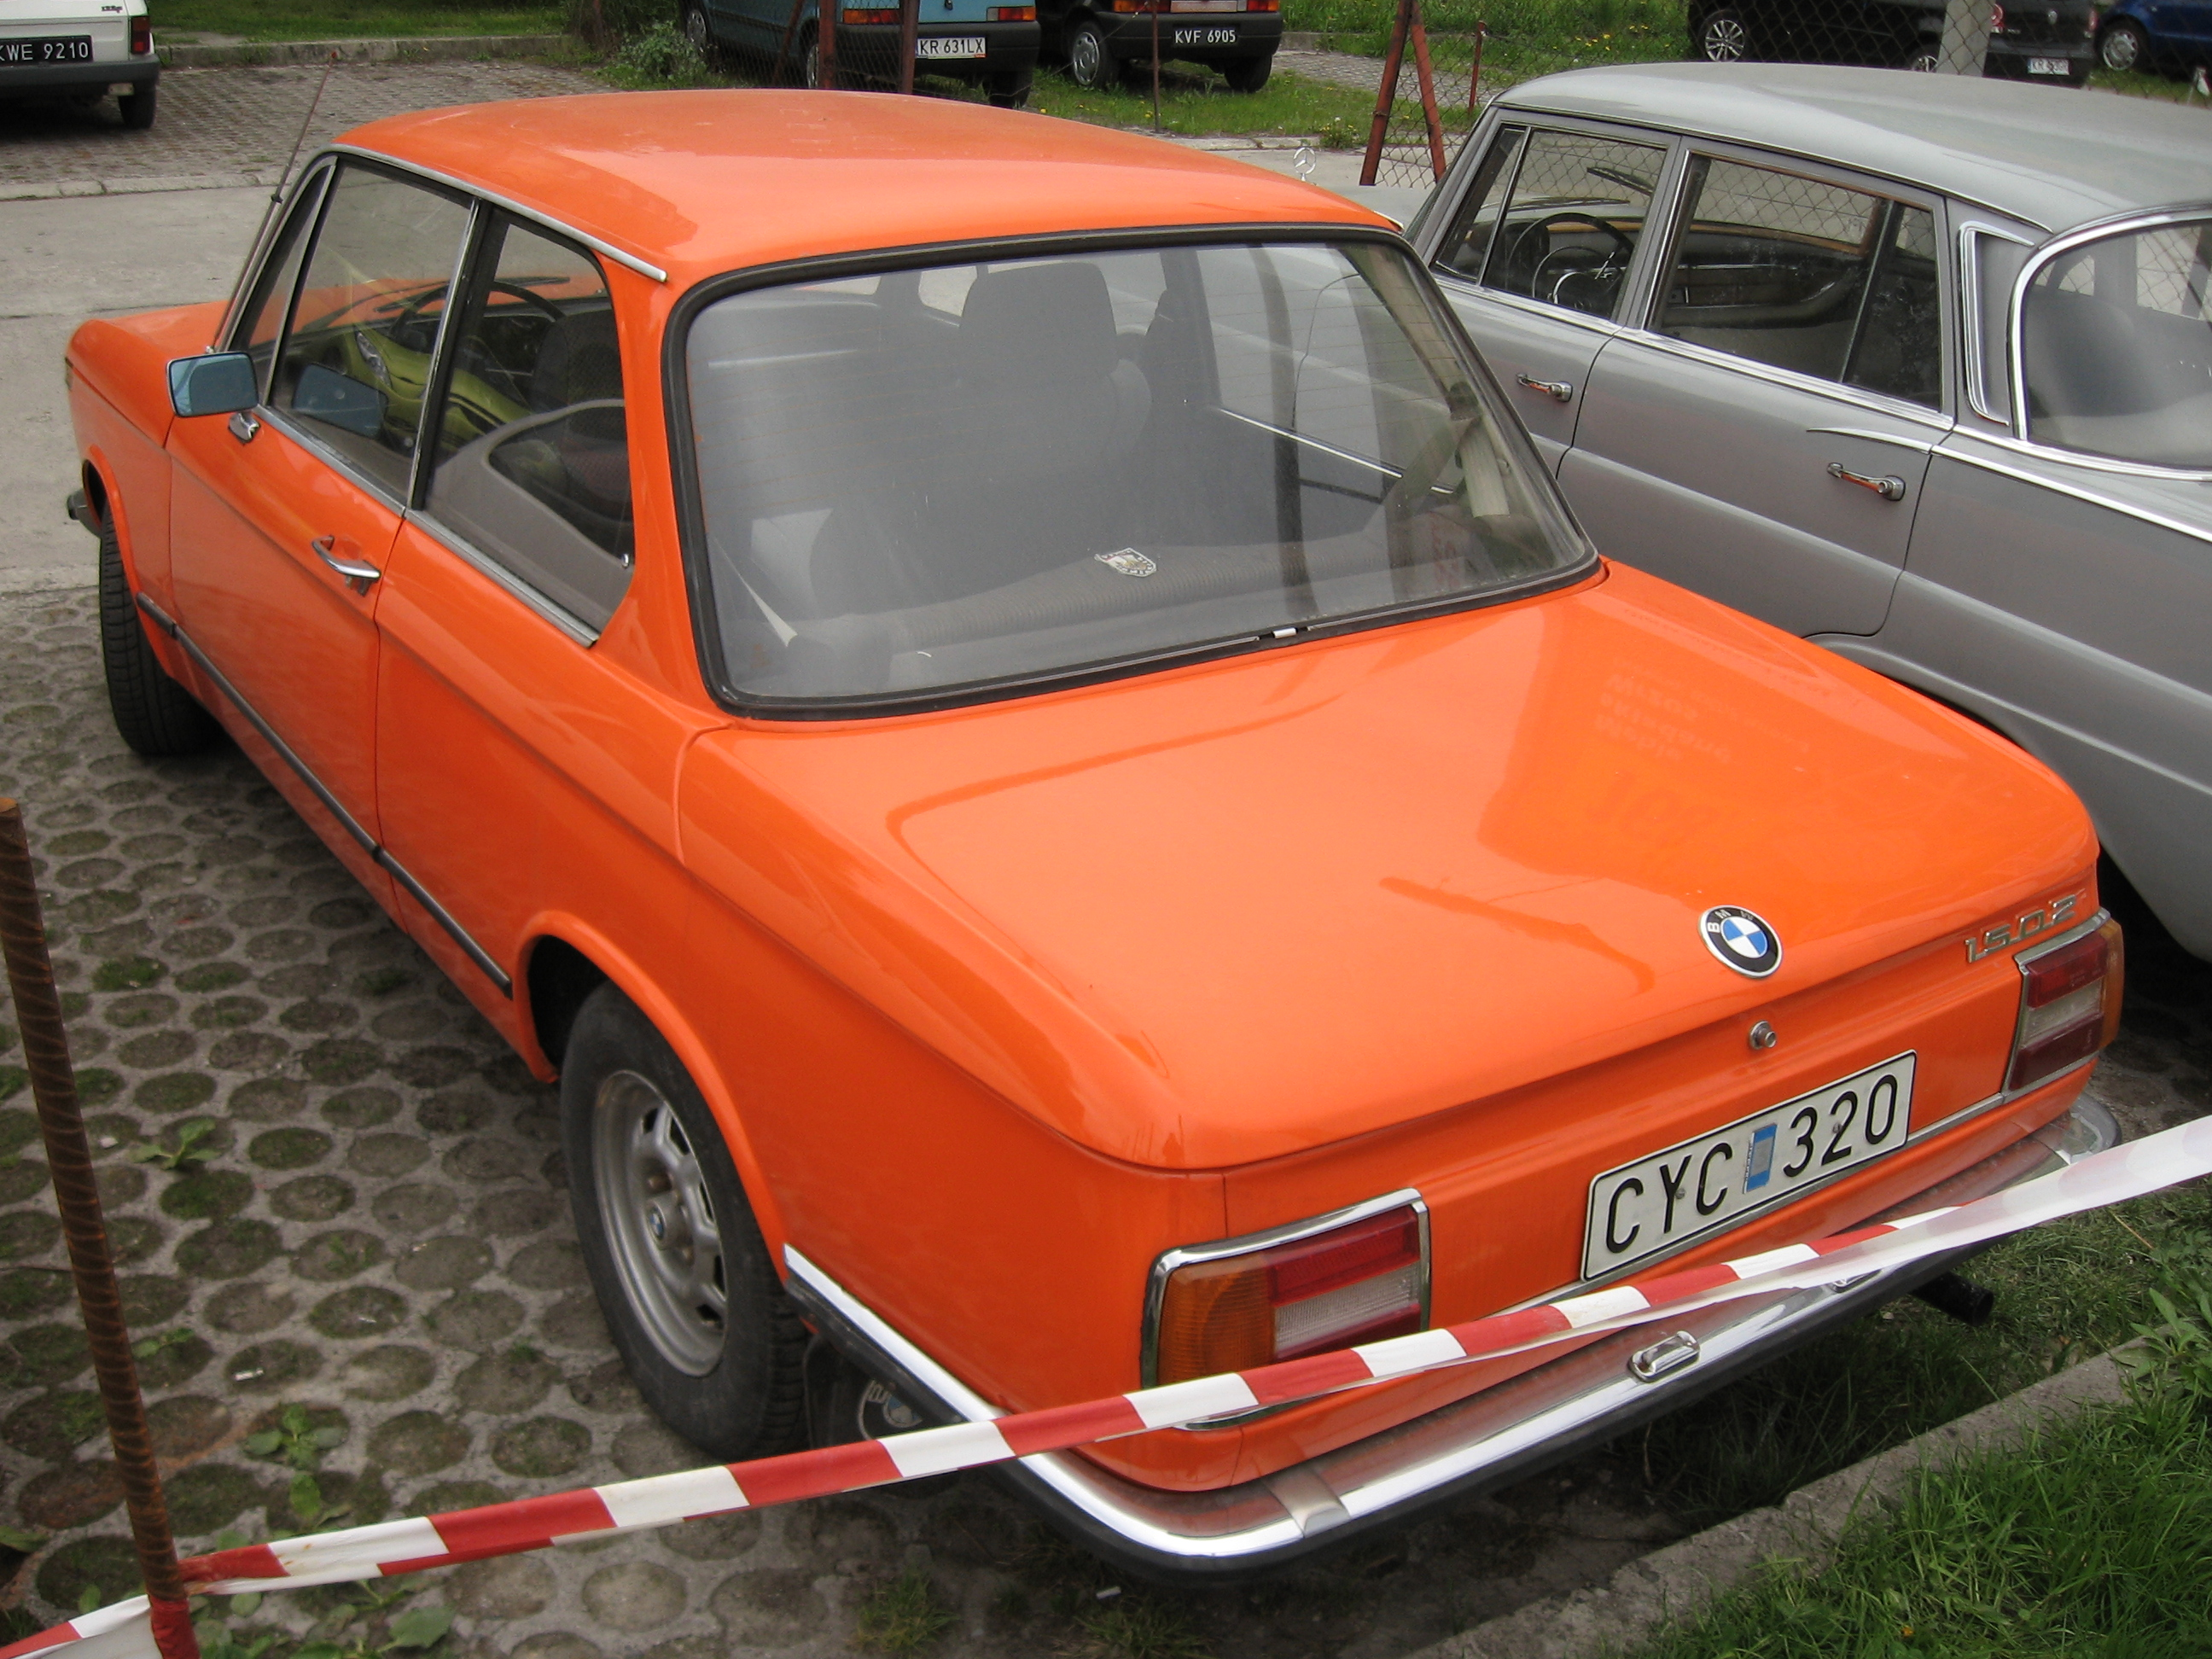 File:Orange BMW 1502 on a parking lot in Kraków (2).jpg